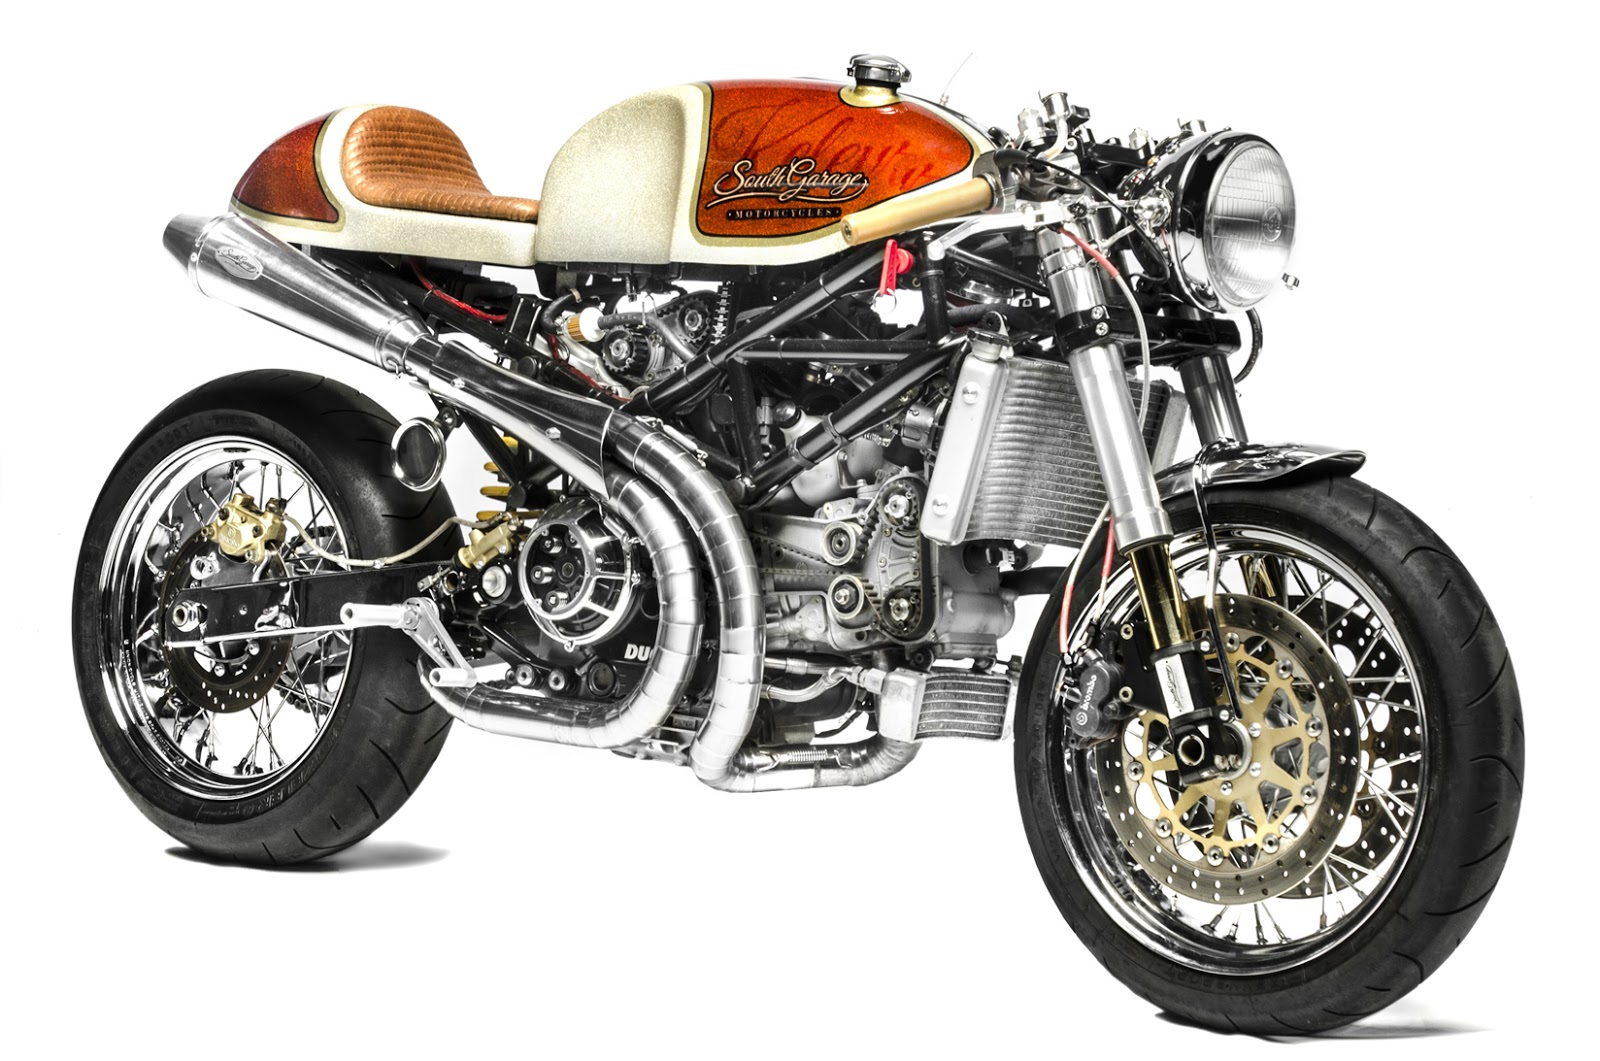 kelevra ducati s4r cafe racer return of the cafe racers. Black Bedroom Furniture Sets. Home Design Ideas